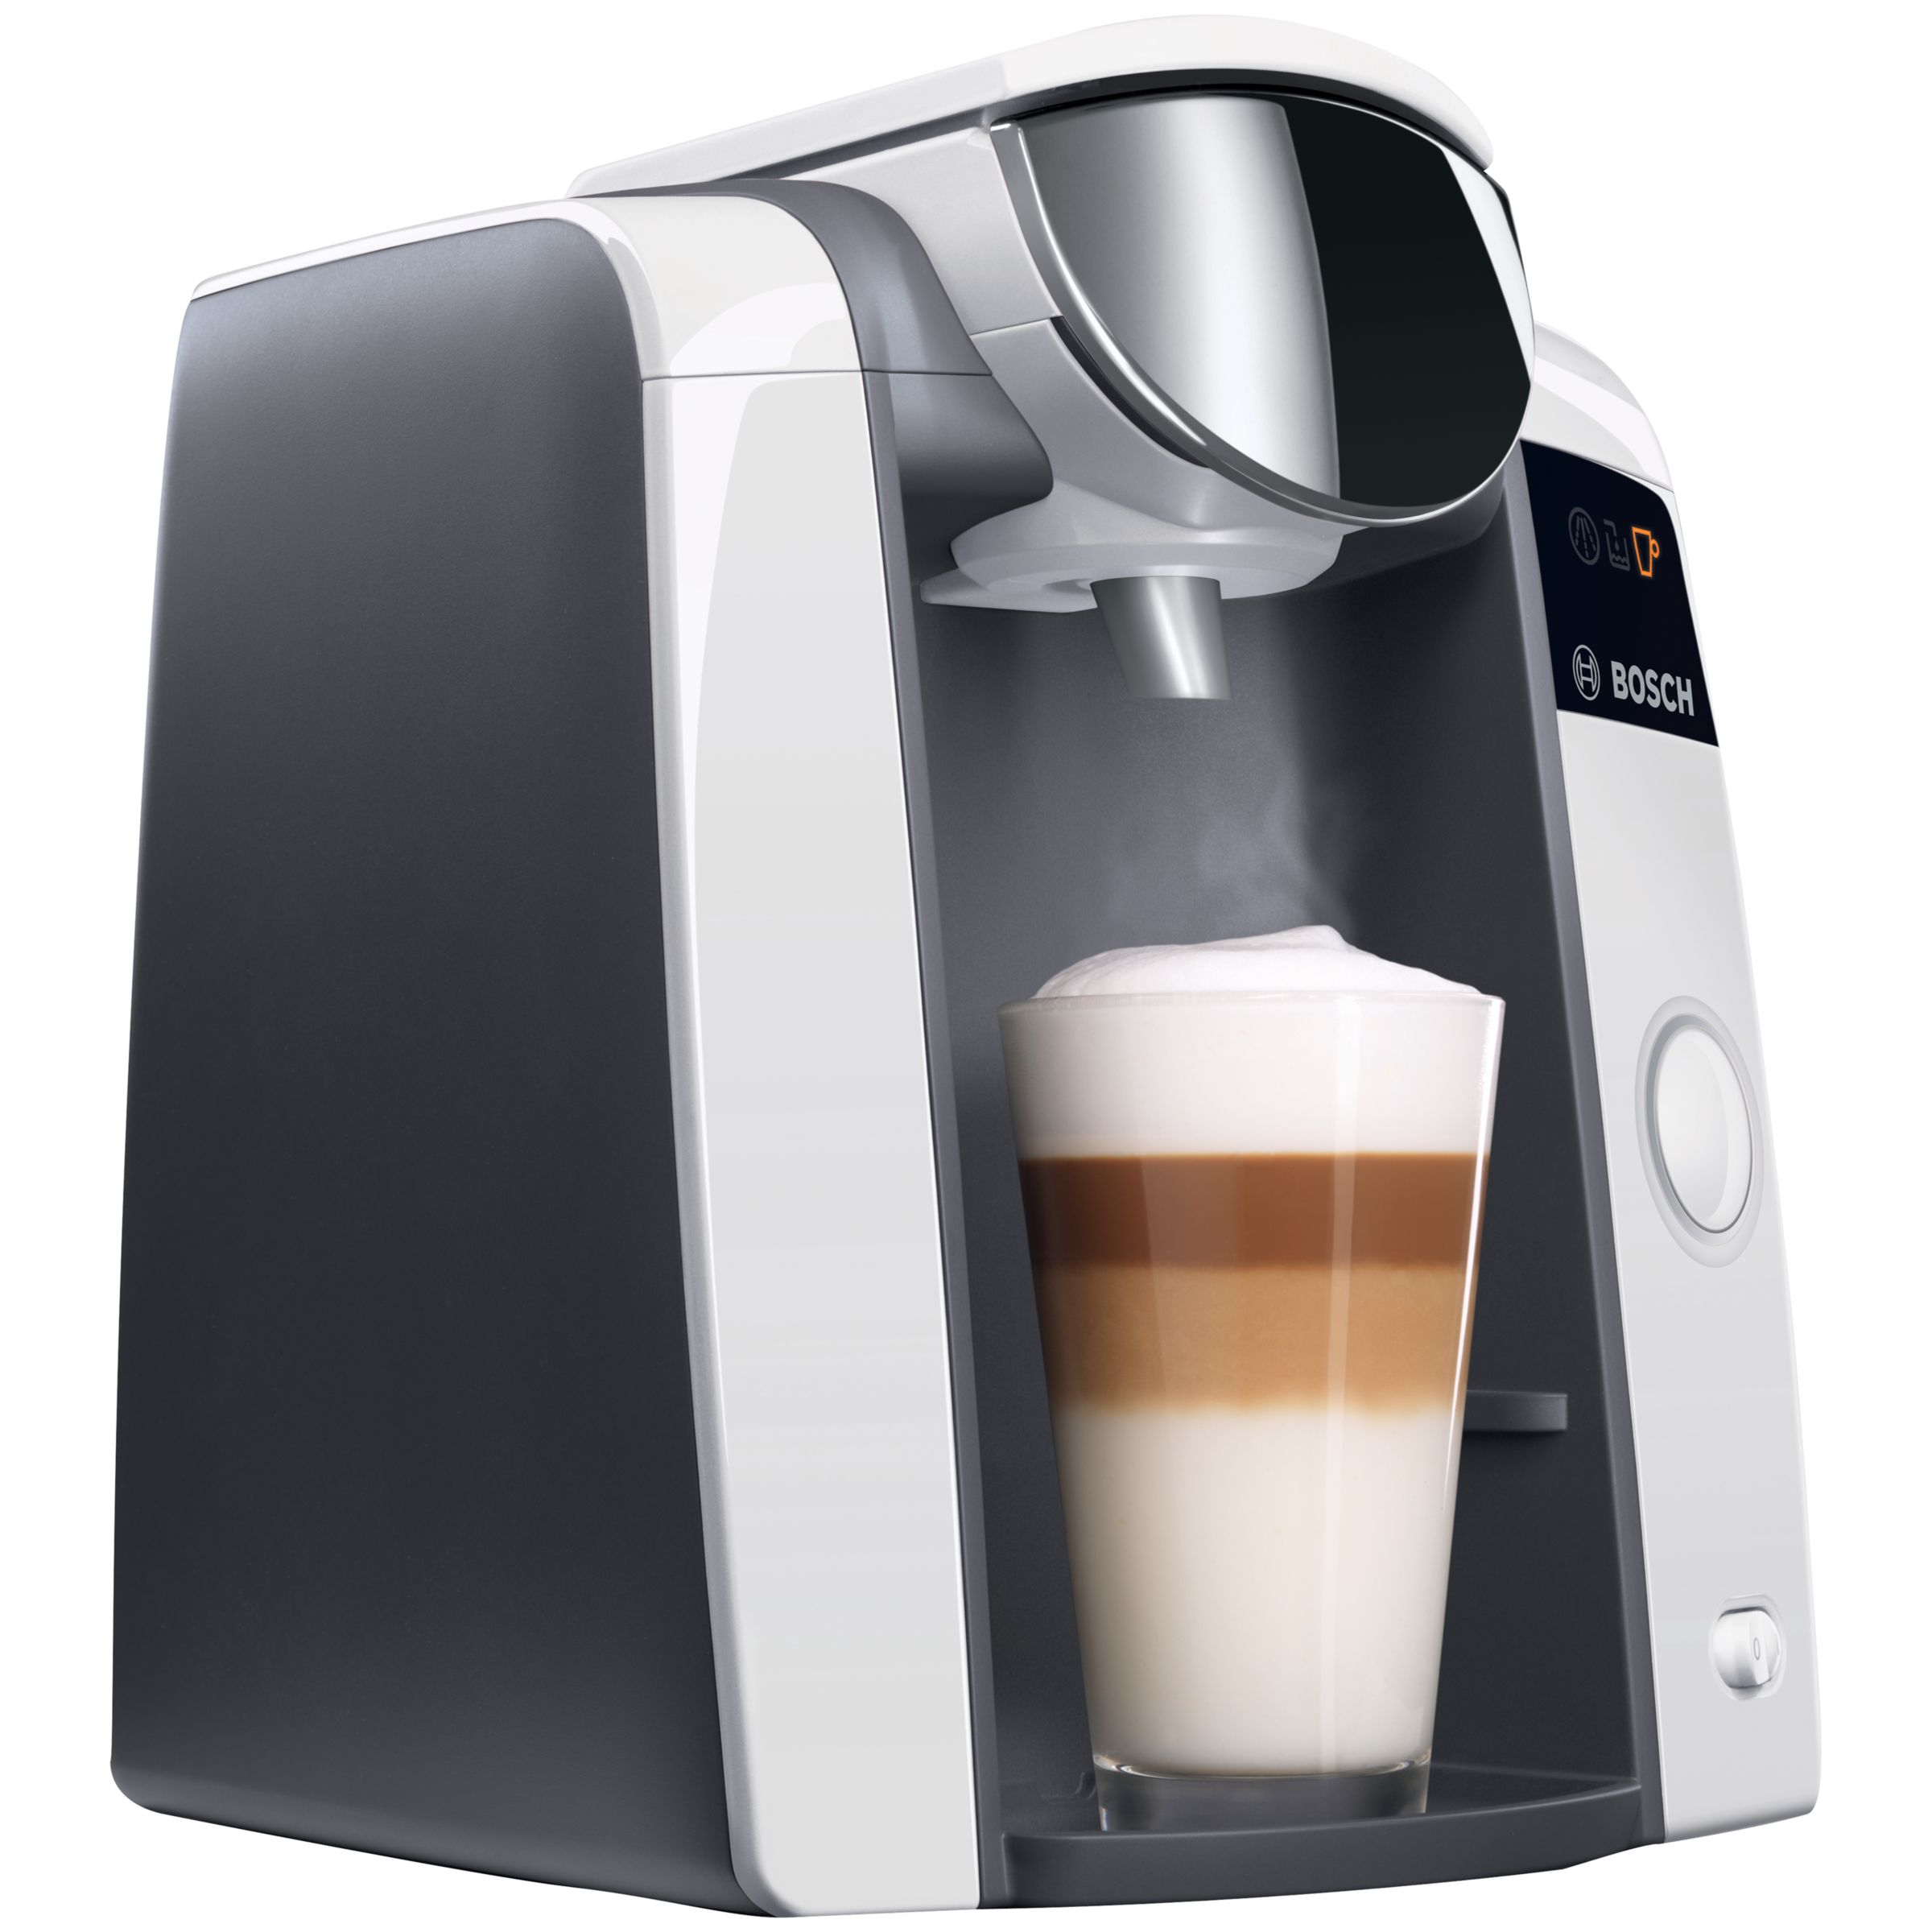 John Lewis Bosch Tassimo Coffee Maker : Buy Tassimo Joy Coffee Machine by Bosch, White John Lewis